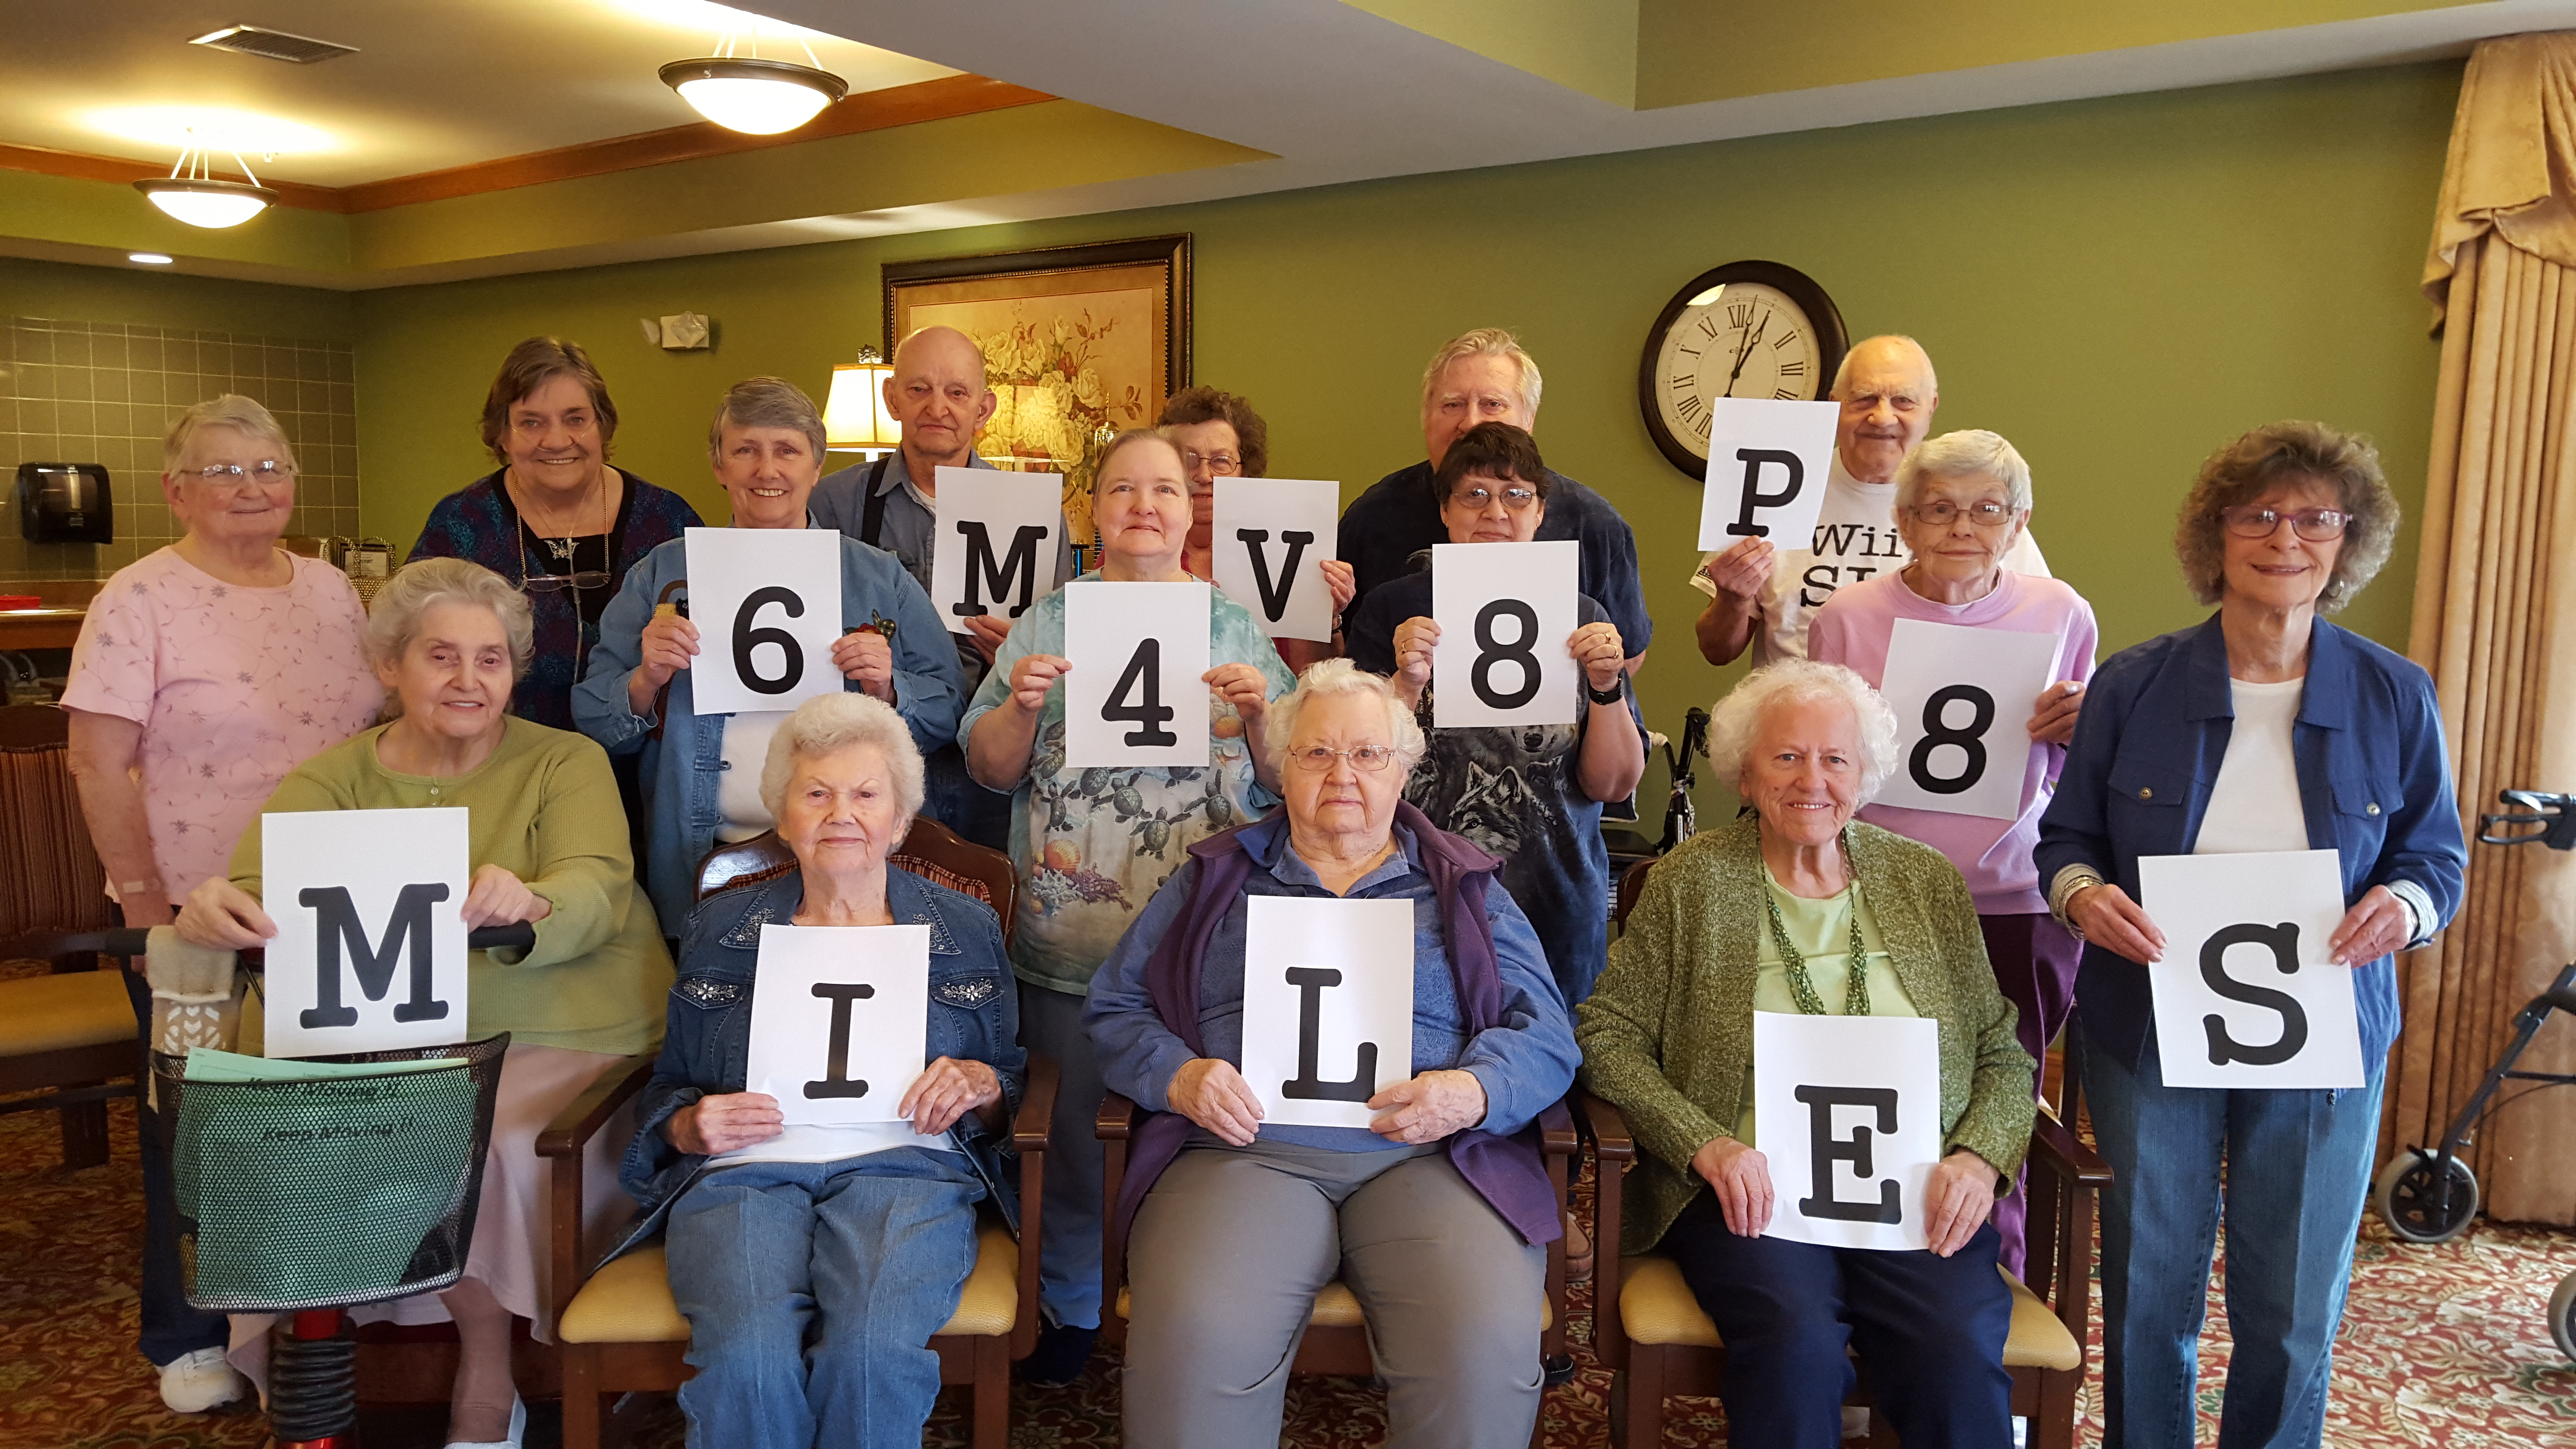 The residents at our affordable assisted living community in Charleston, Illinois logged nearly 6,500 miles -- close to 10 percent of the total miles earned -- during the Keep Moving Challenge.